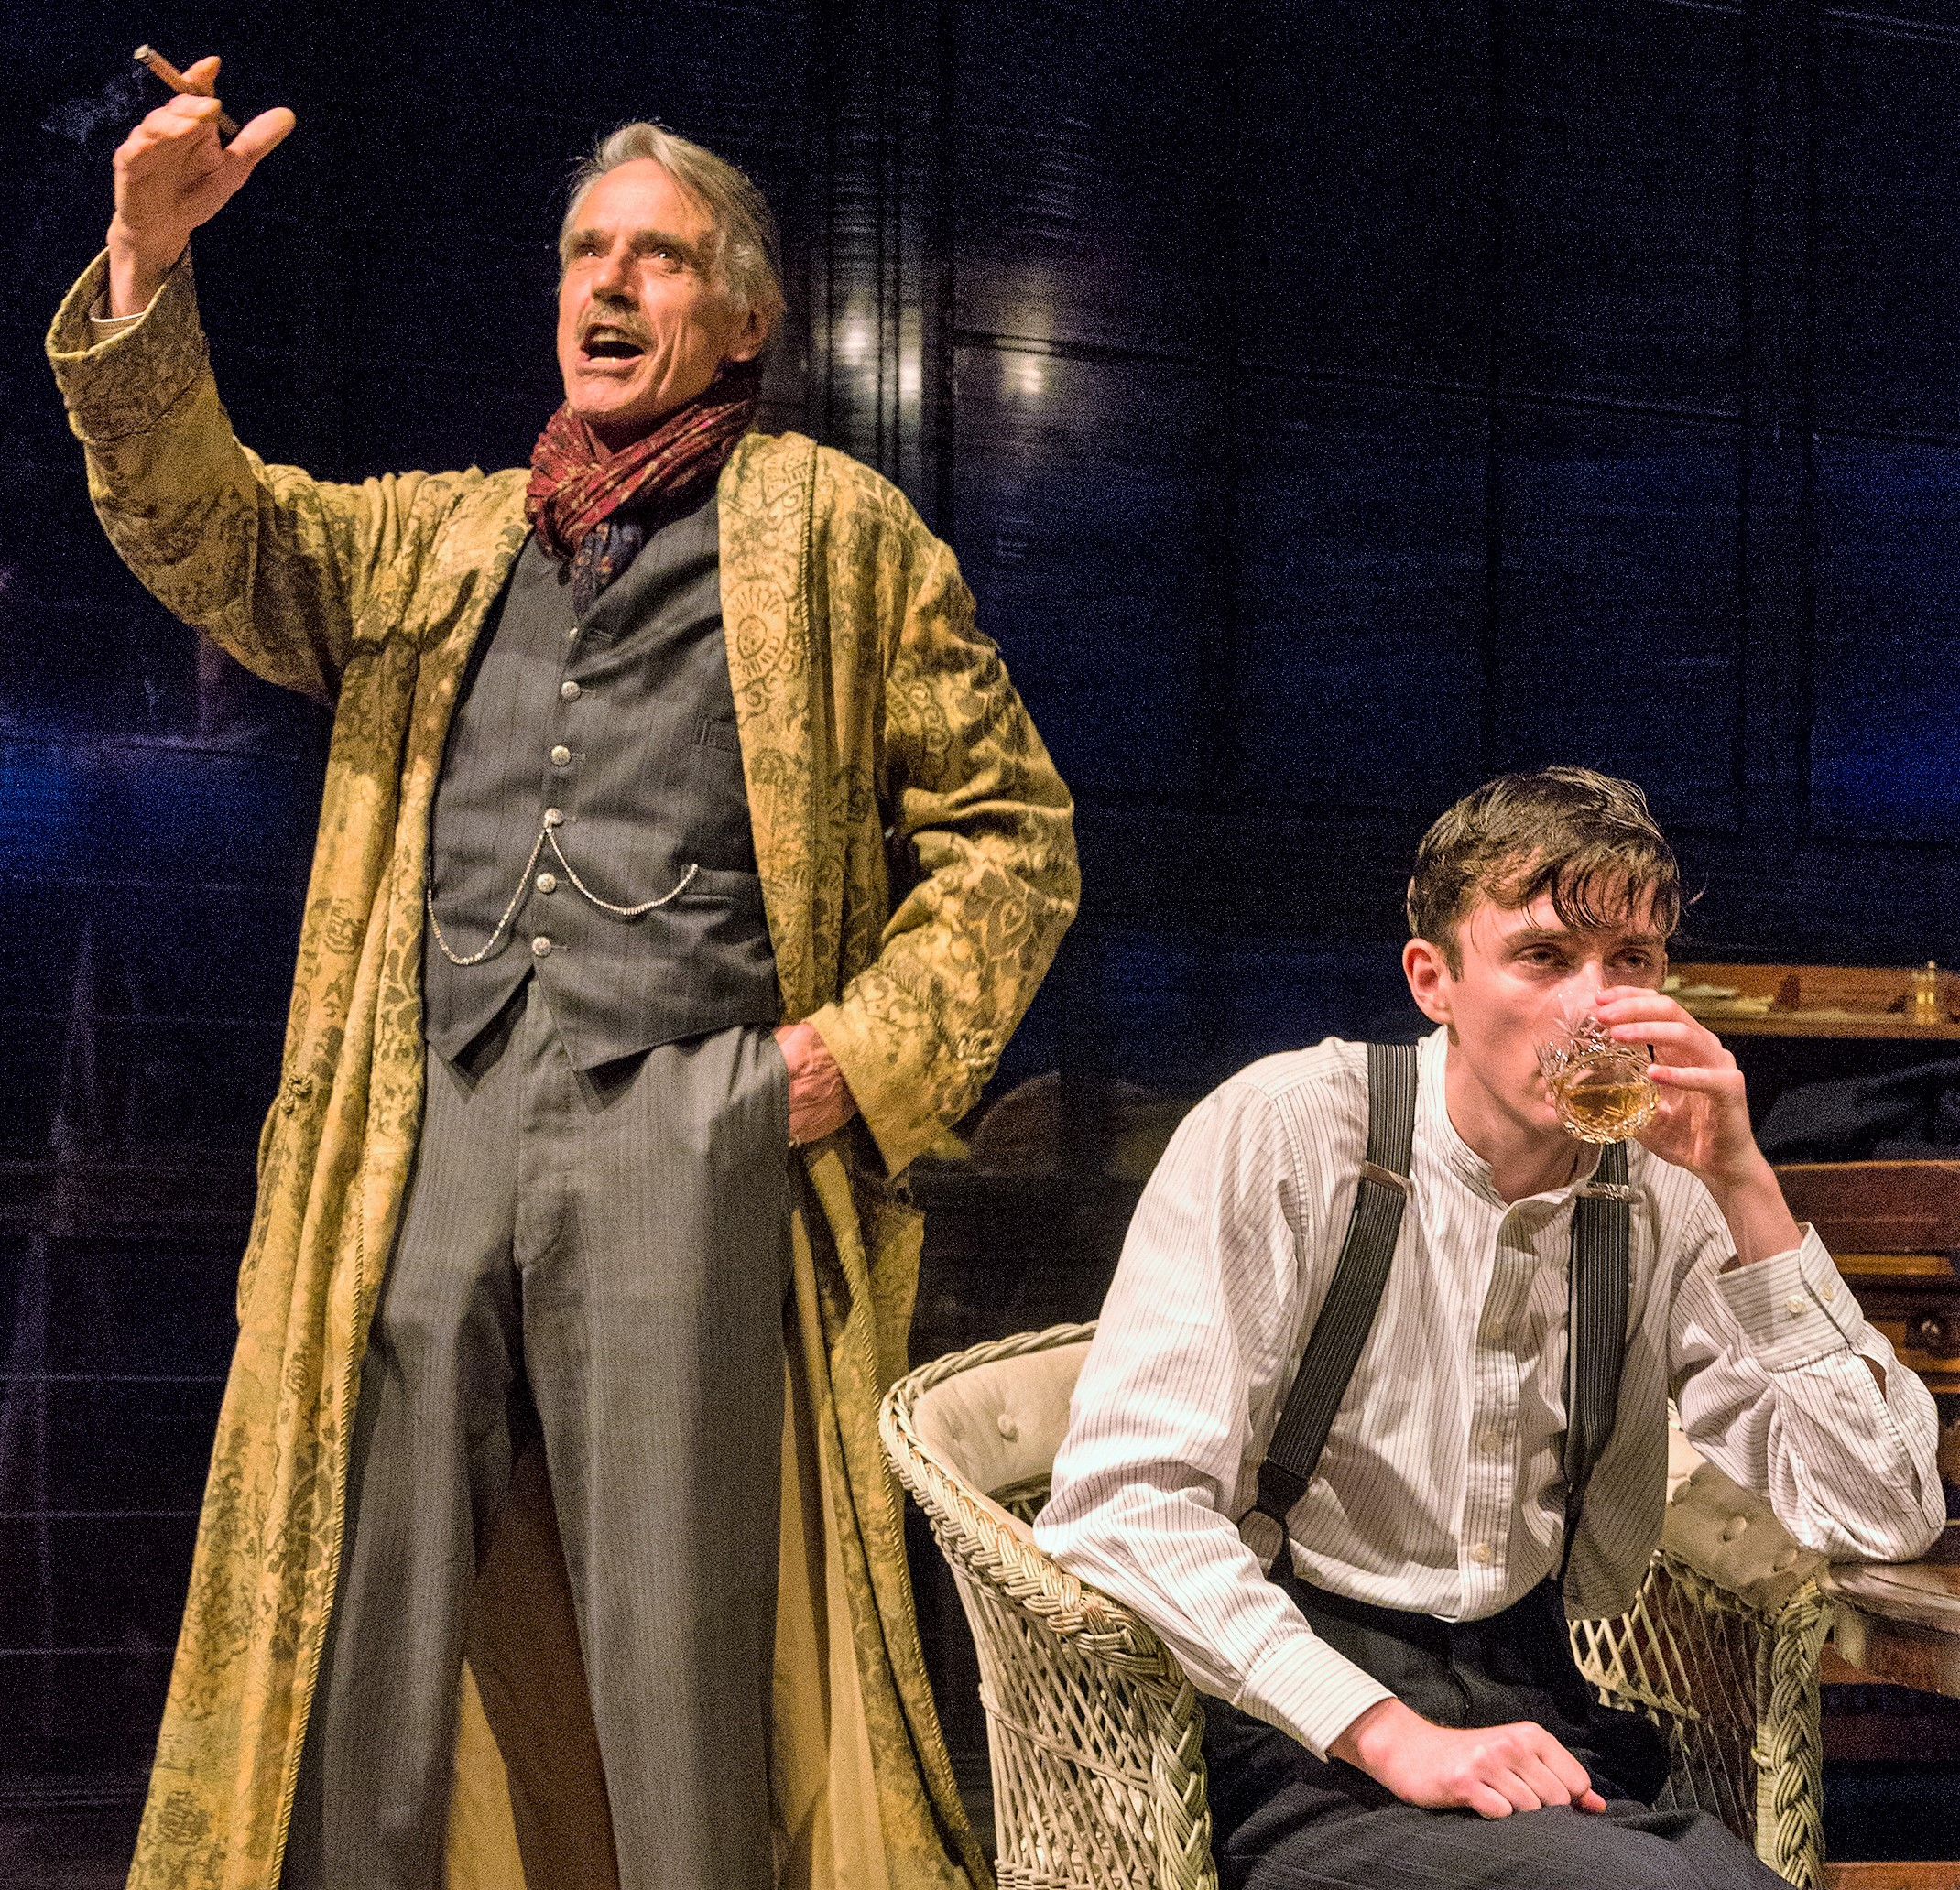 James Tyrone (Irons) talks about his theatrical career to younger son Edmund (Beard).